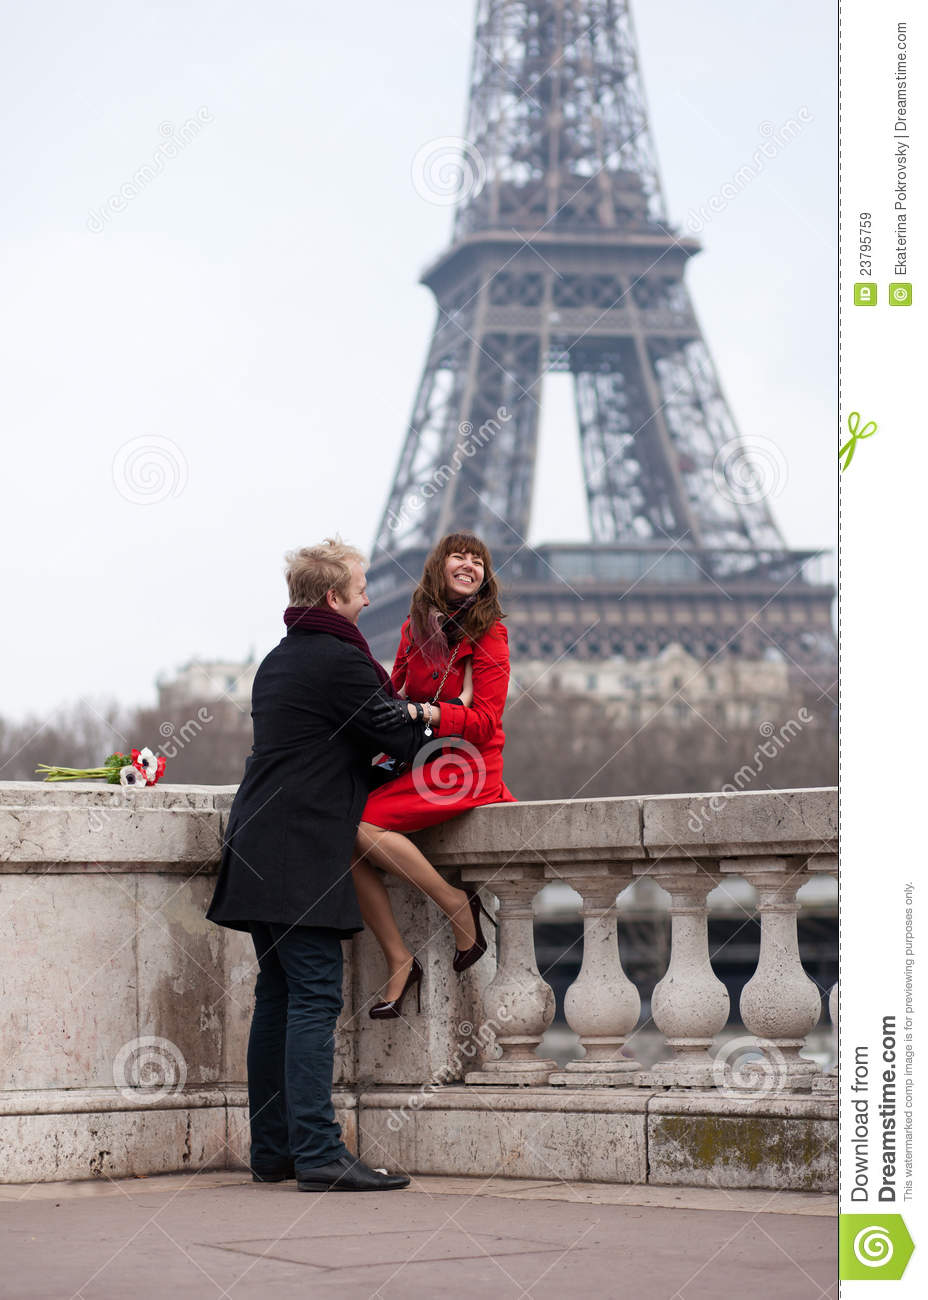 romantic couple in paris near the eiffel tower stock image image of city girlfriend 23795759. Black Bedroom Furniture Sets. Home Design Ideas